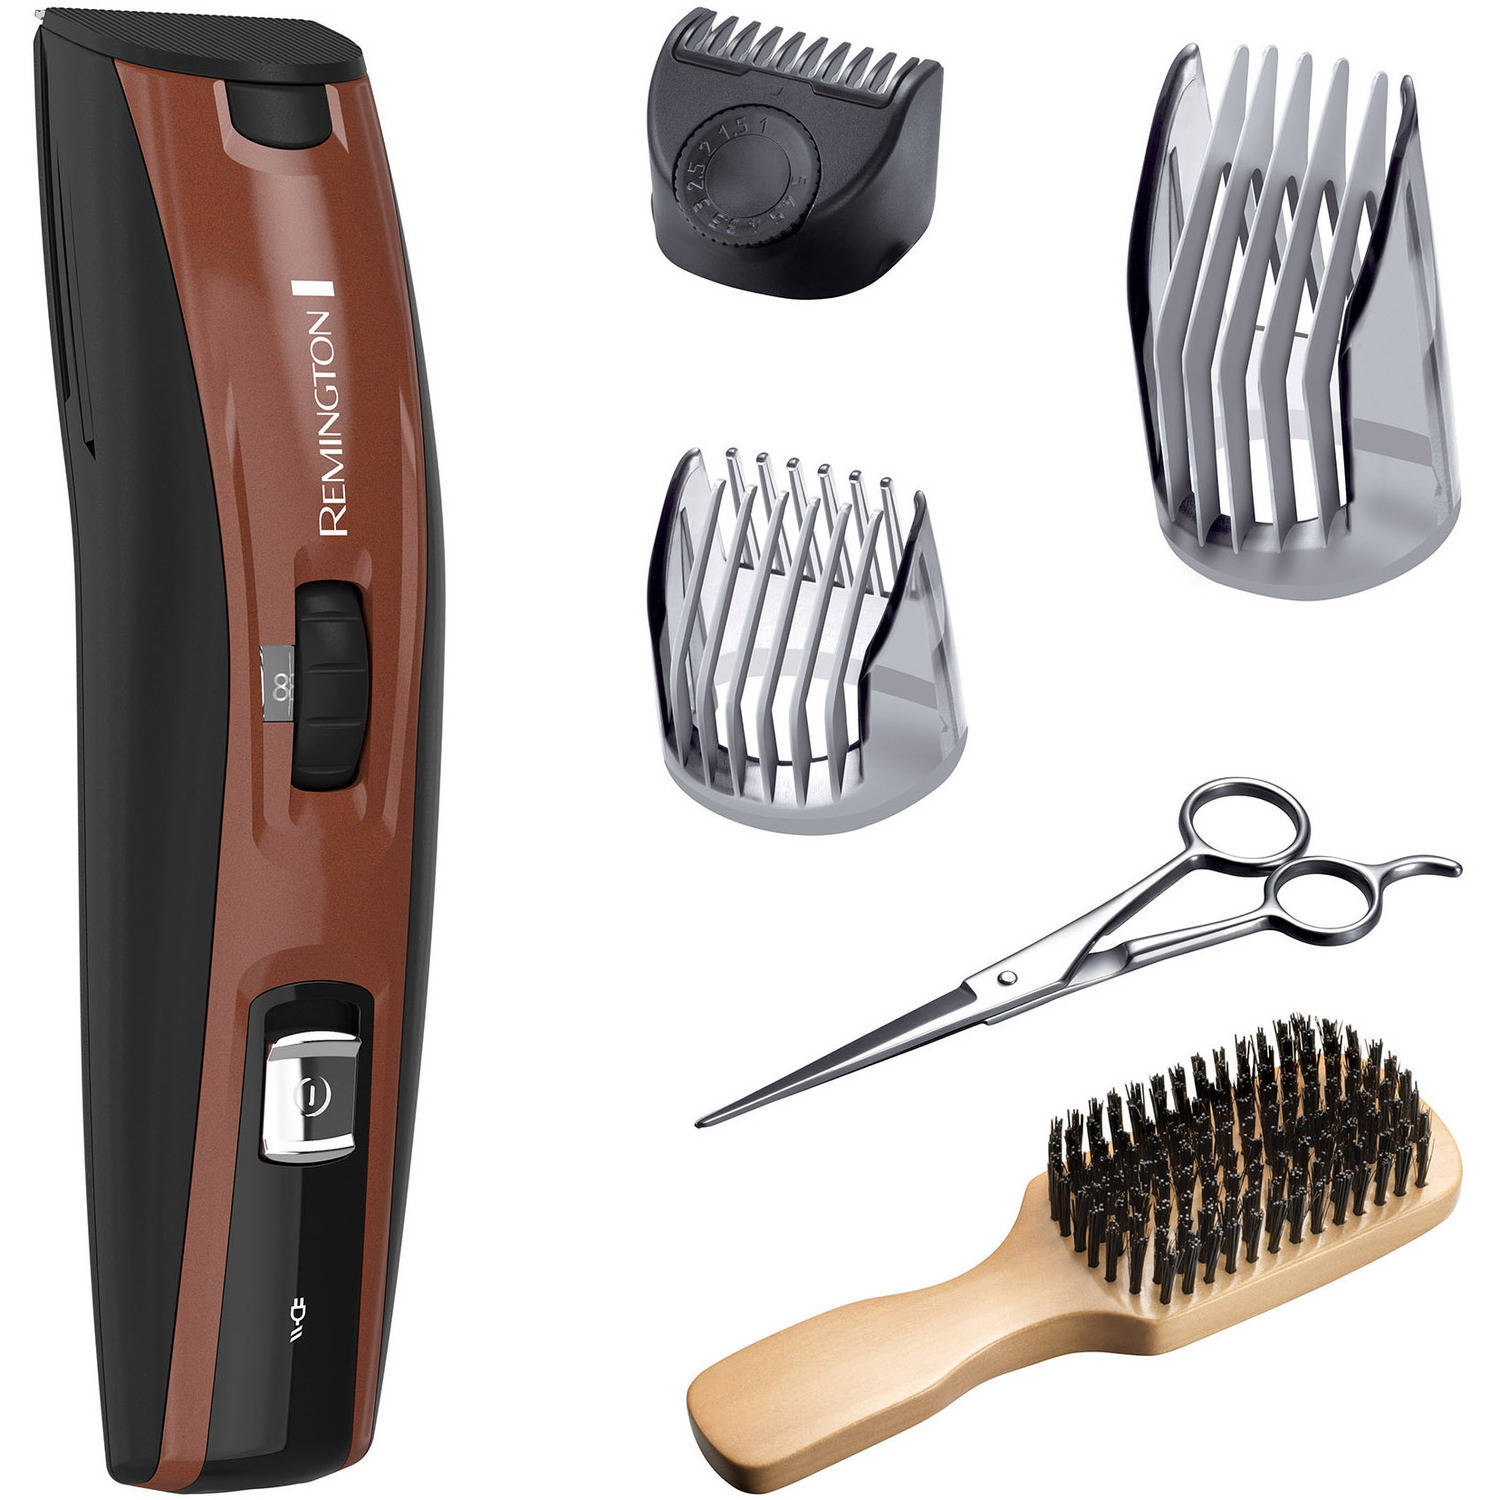 Remington Beard Boss The Beardsman Full Beard Grooming Kit, MB4045A, 6 pc